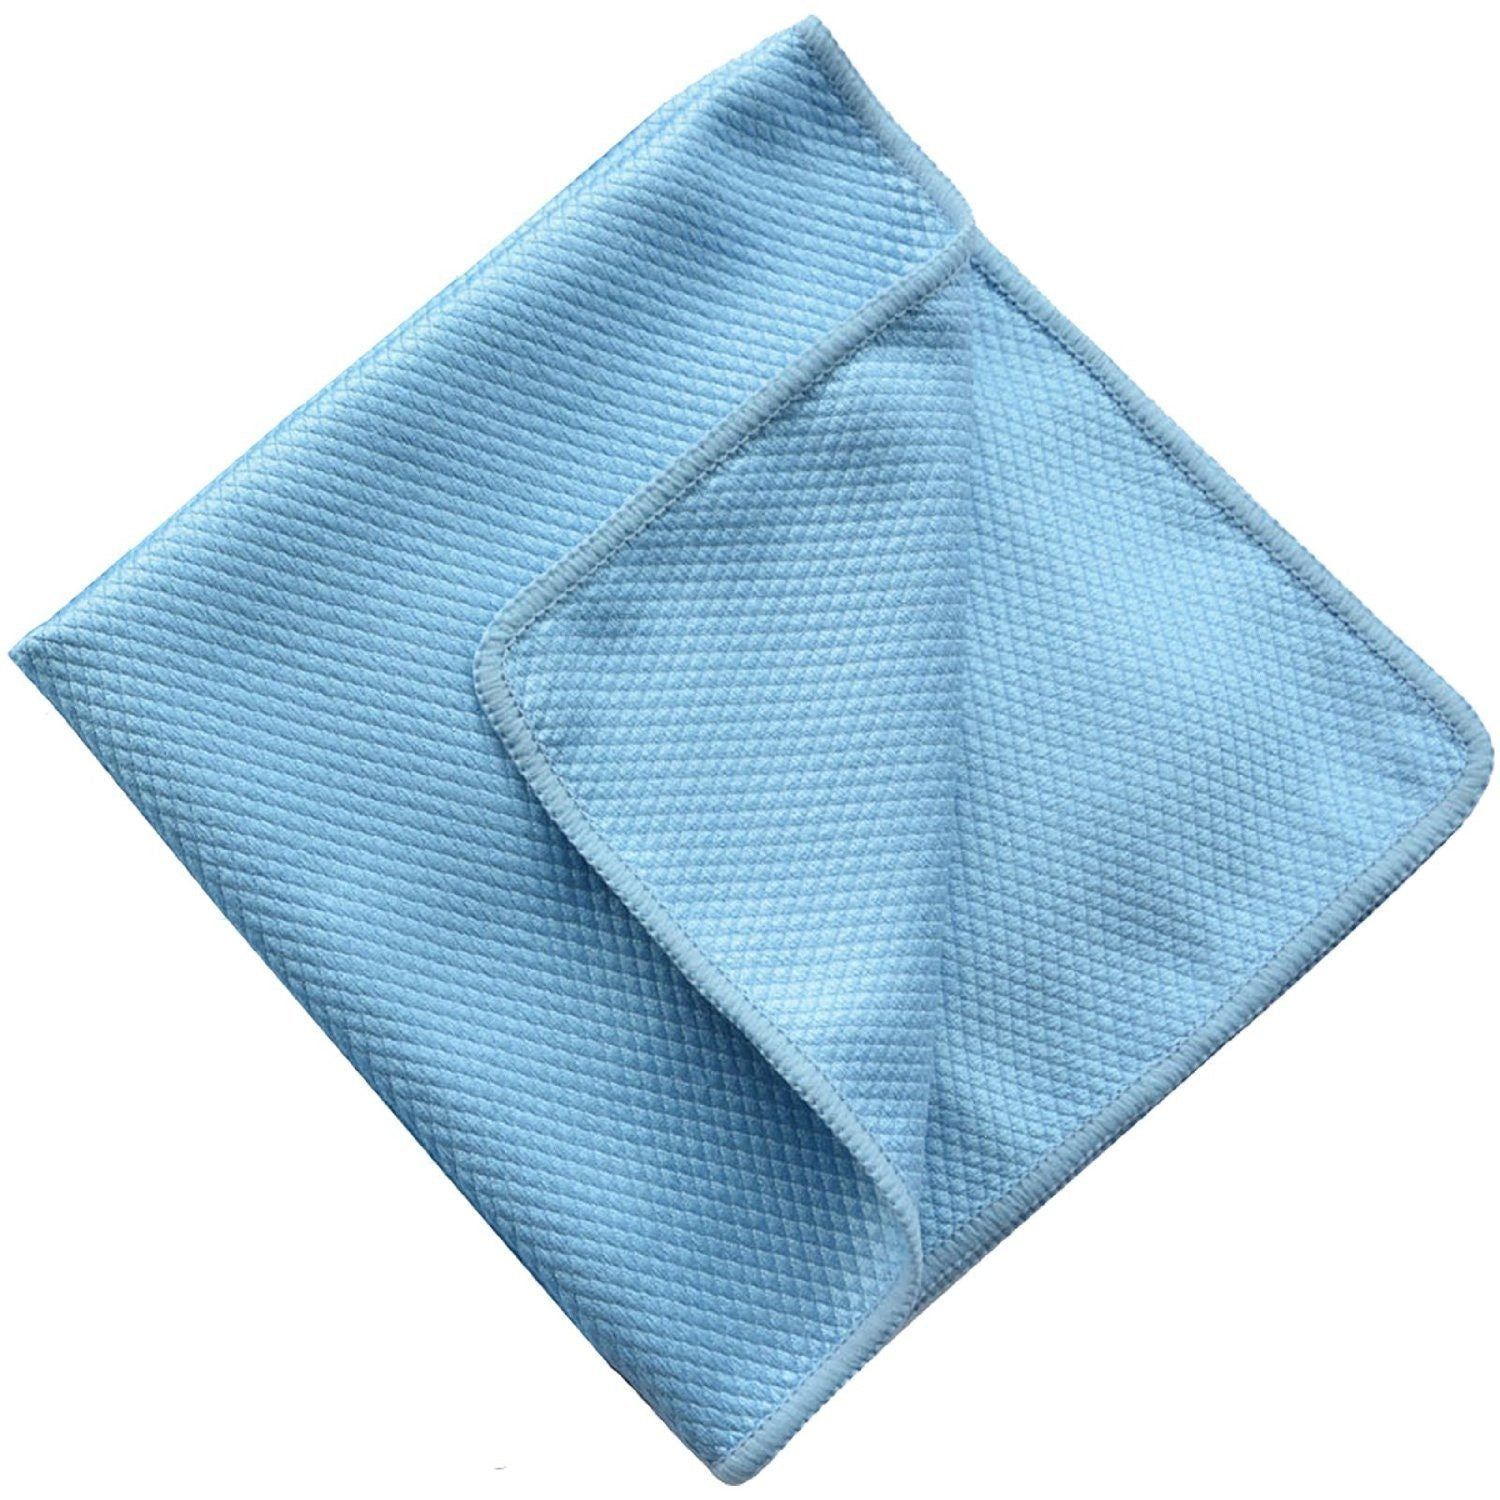 Microfiber Cleaning Cloth - Household Wipes And Cloths – Pro Chef ...